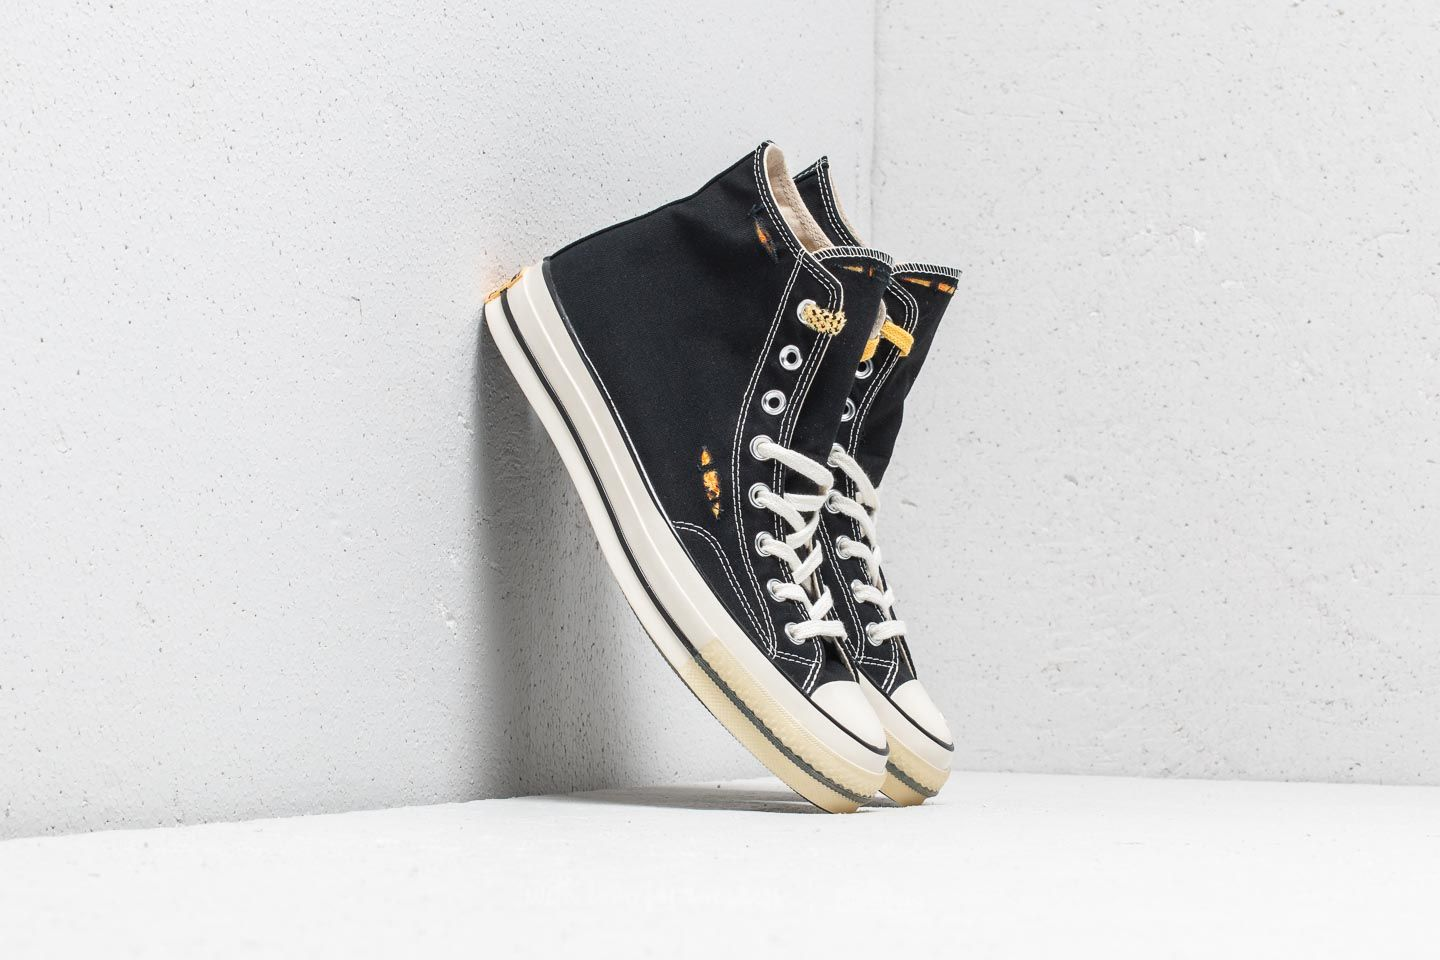 ab053f0ded4 Converse Chuck Taylor All Star 70 Hi Black/ Sunset Gold/ Egret ...